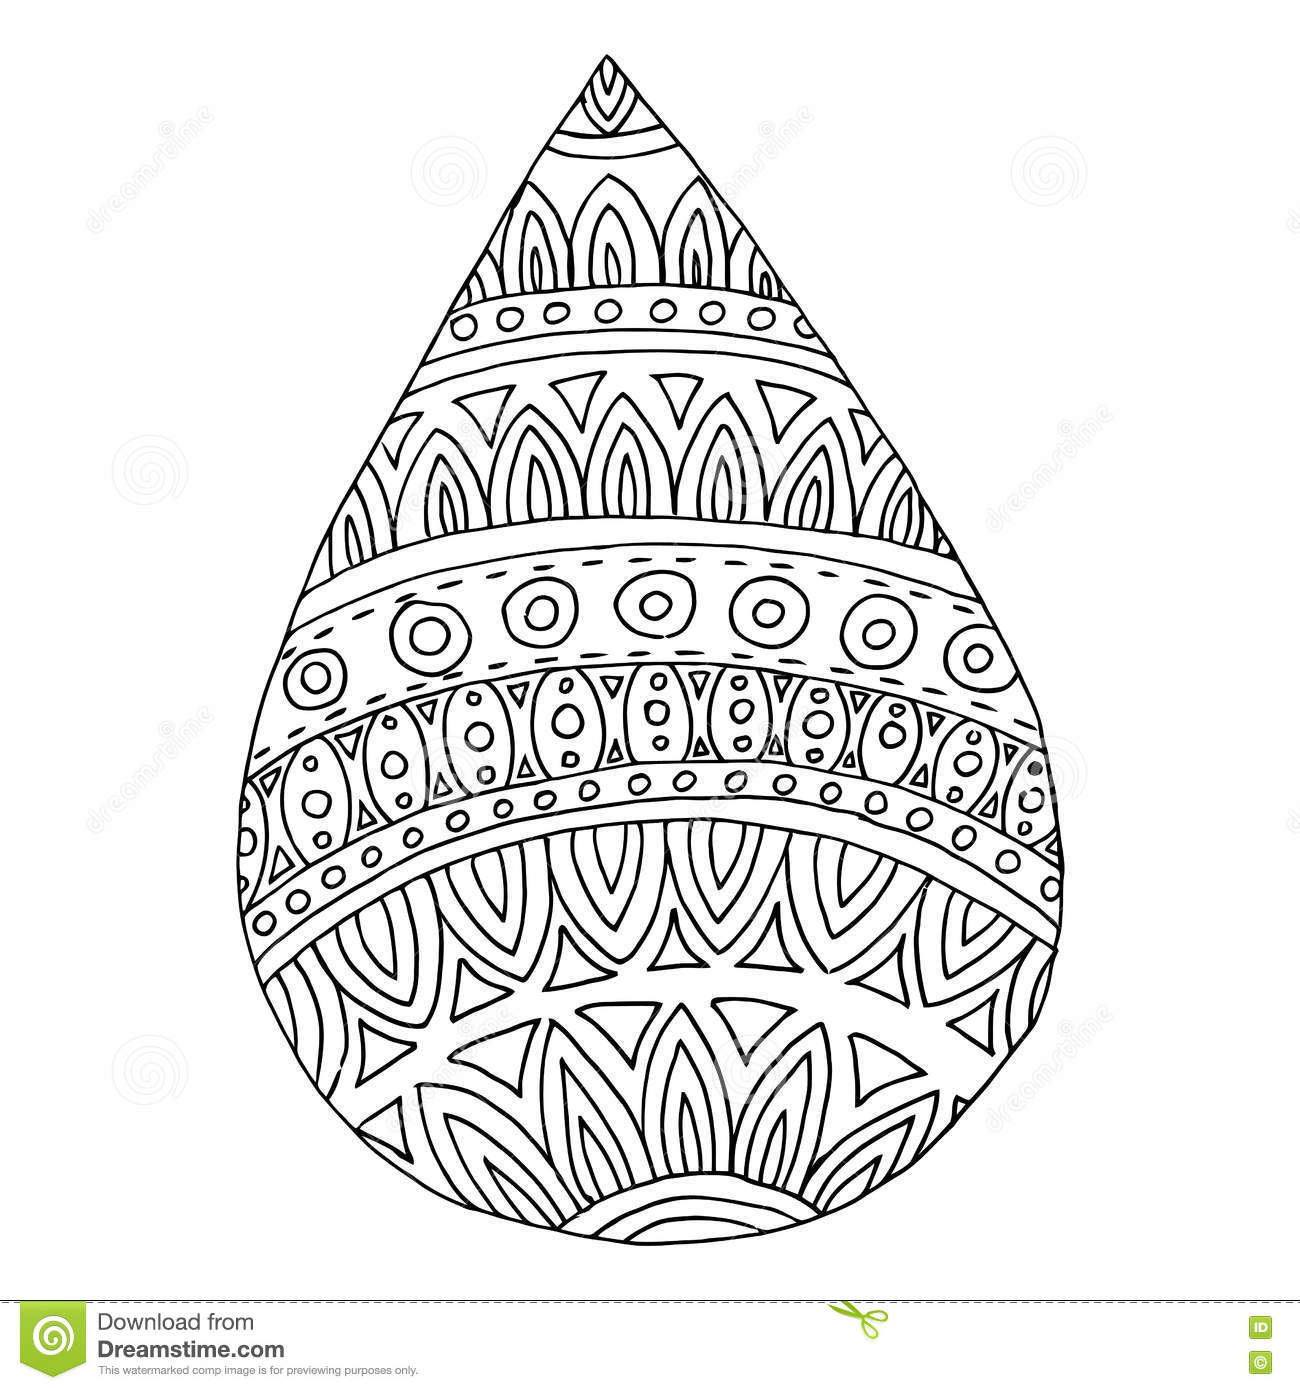 water drop coloring page free water drop colouring pages clipart best drop page water coloring